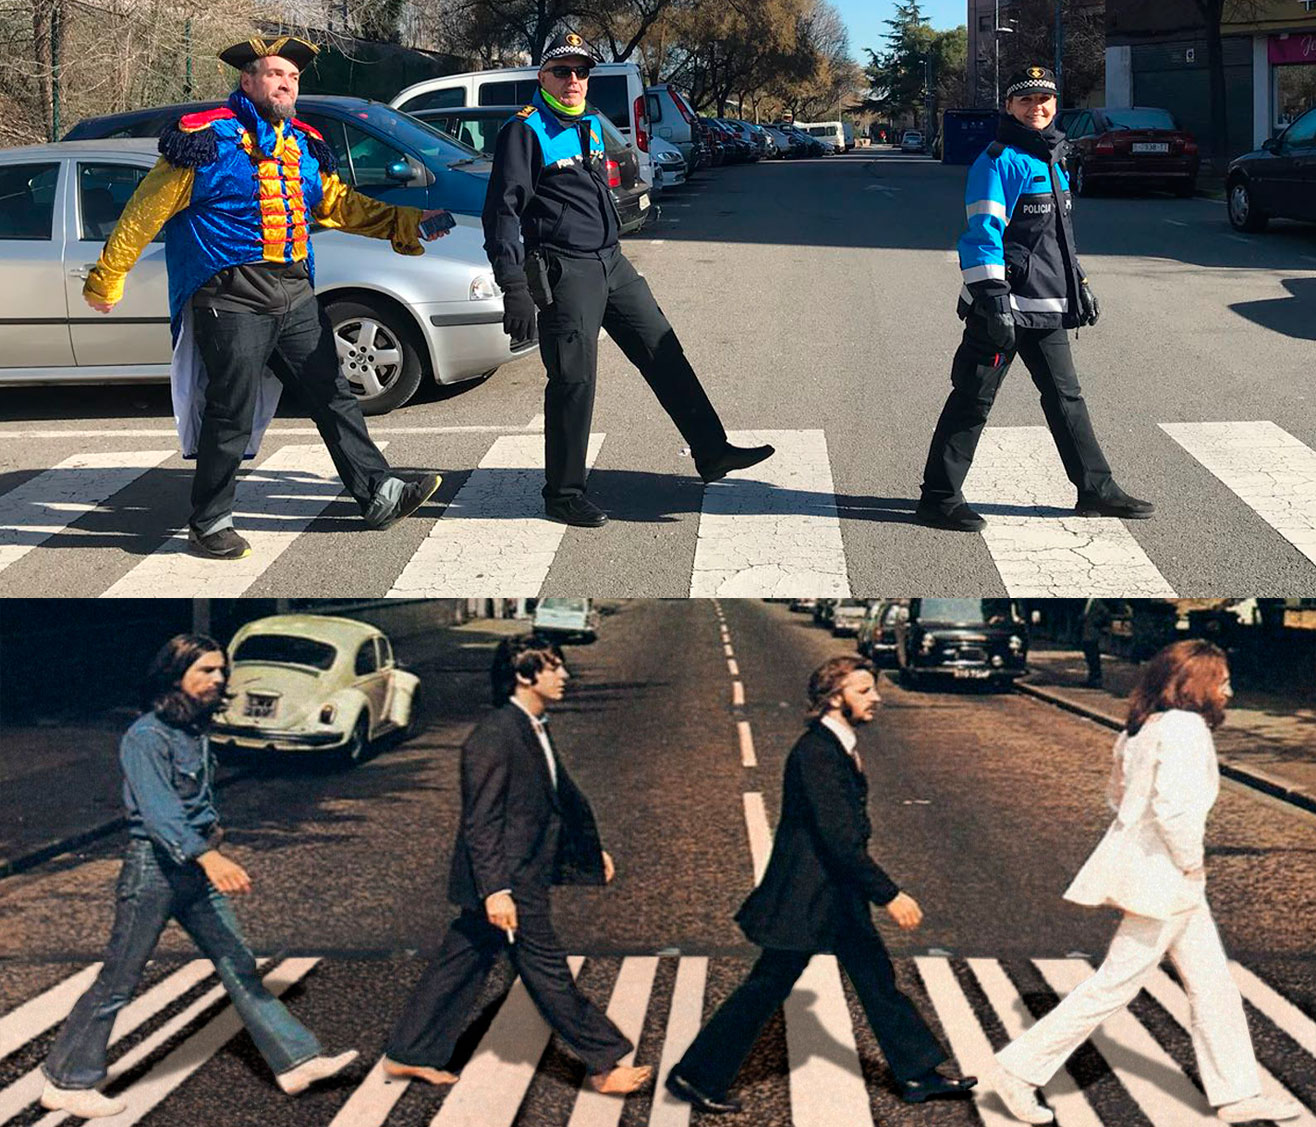 La Policia Local de Canovelles i els Beatles, fent un 'Abbbey Road'